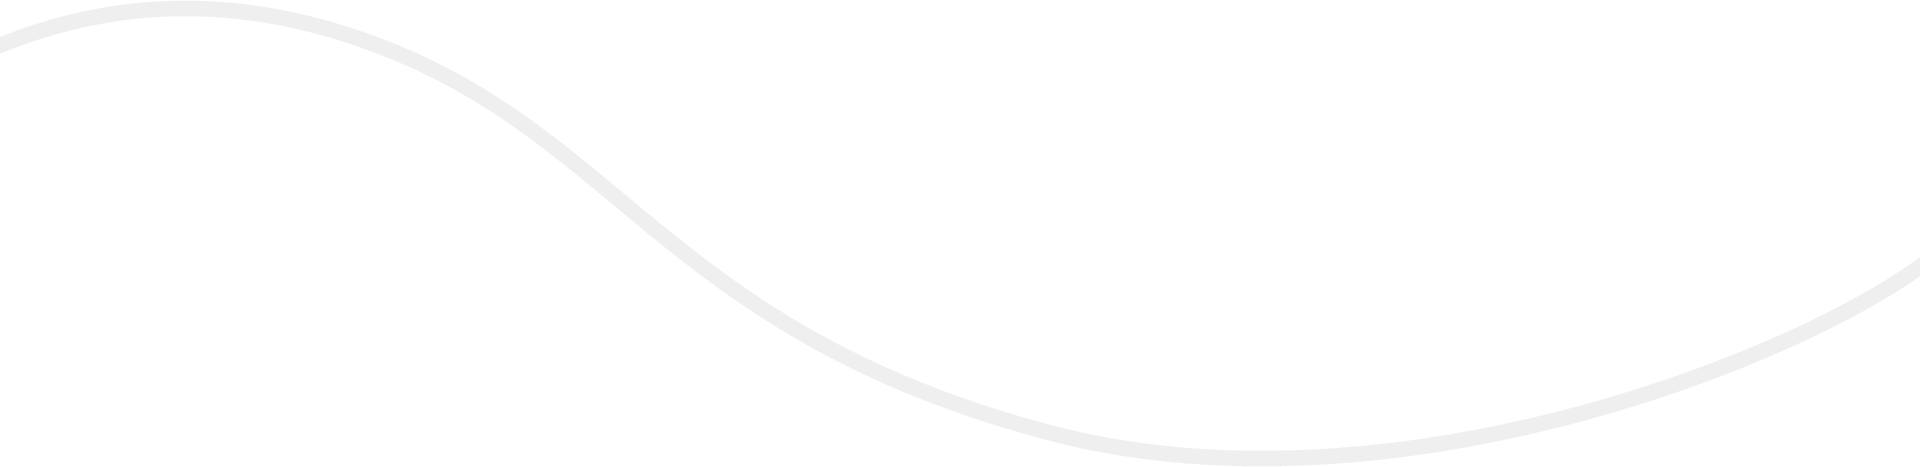 Curvy line that represents the storyline of Lizard Global